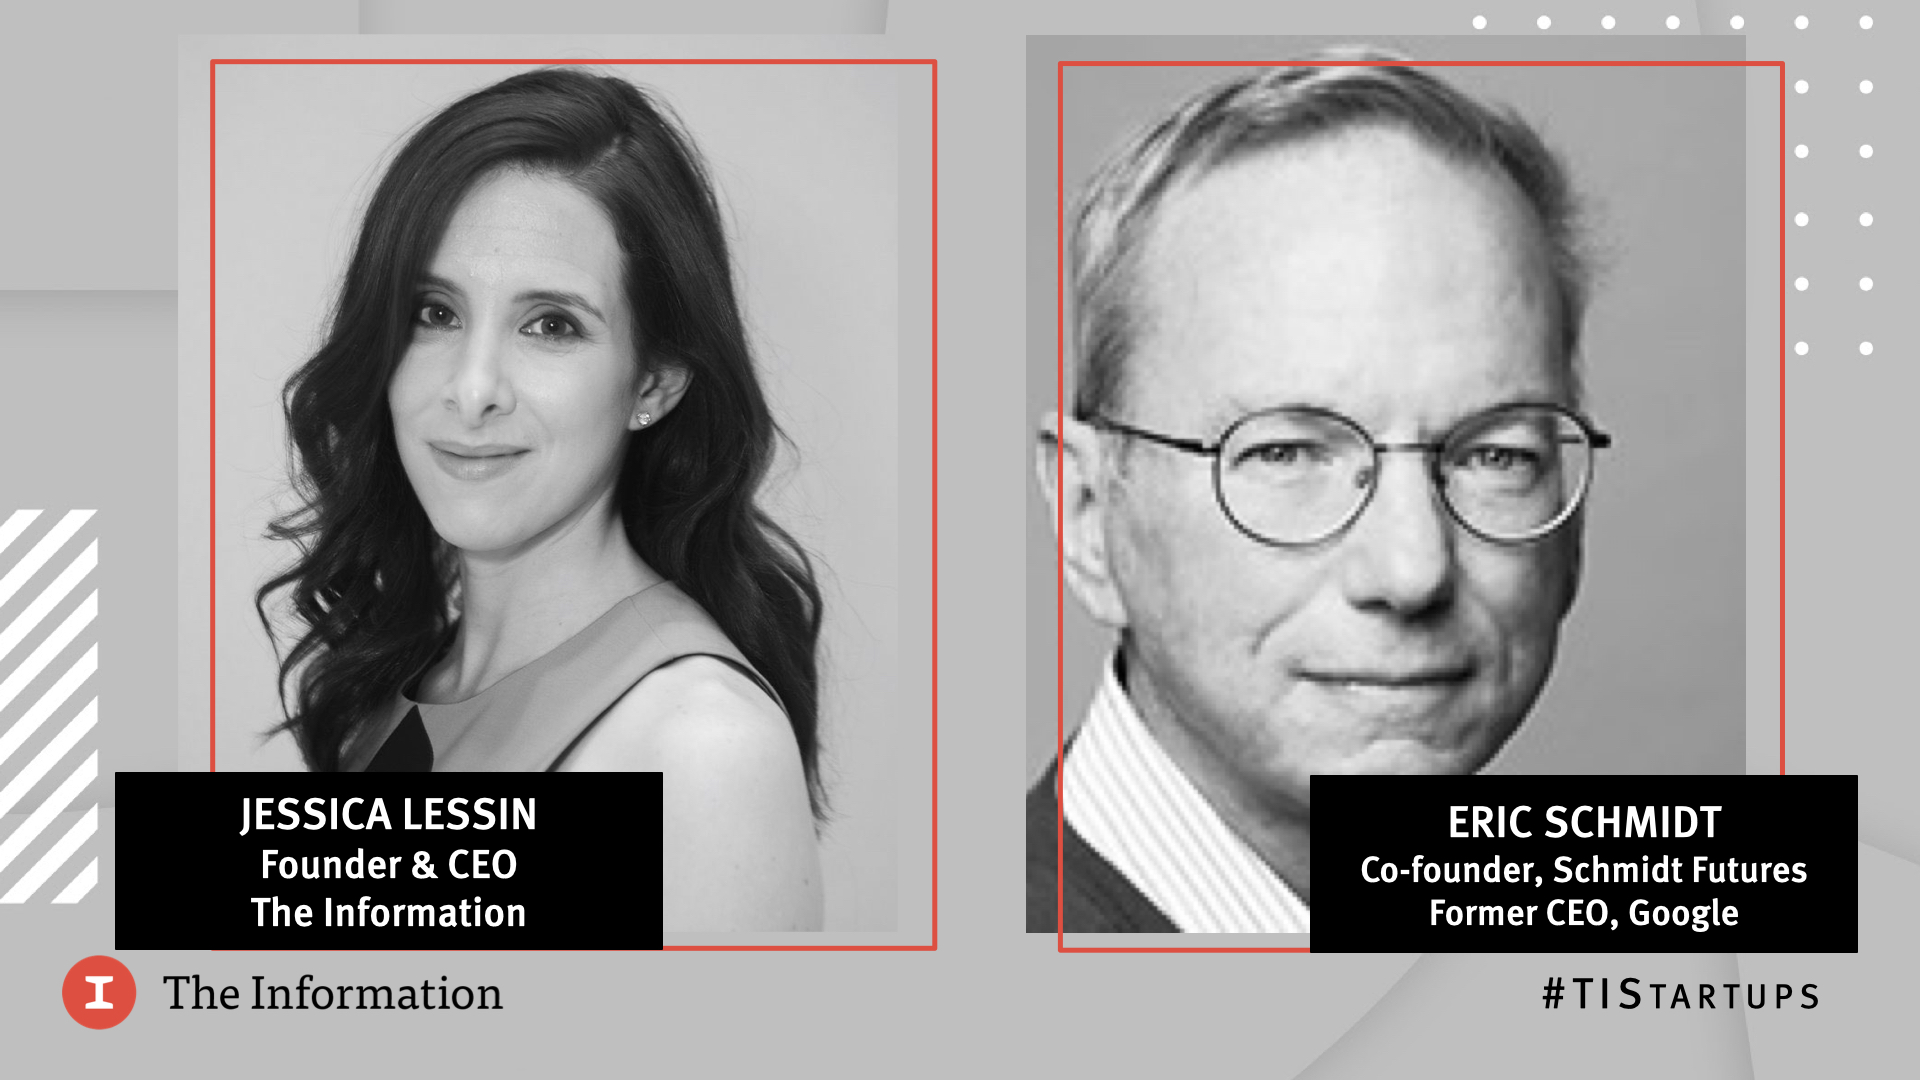 Future of Startups 2021 - Eric Schmidt, Former CEO, Google, in conversation with Jessica Lessin, Founder & CEO, The Information